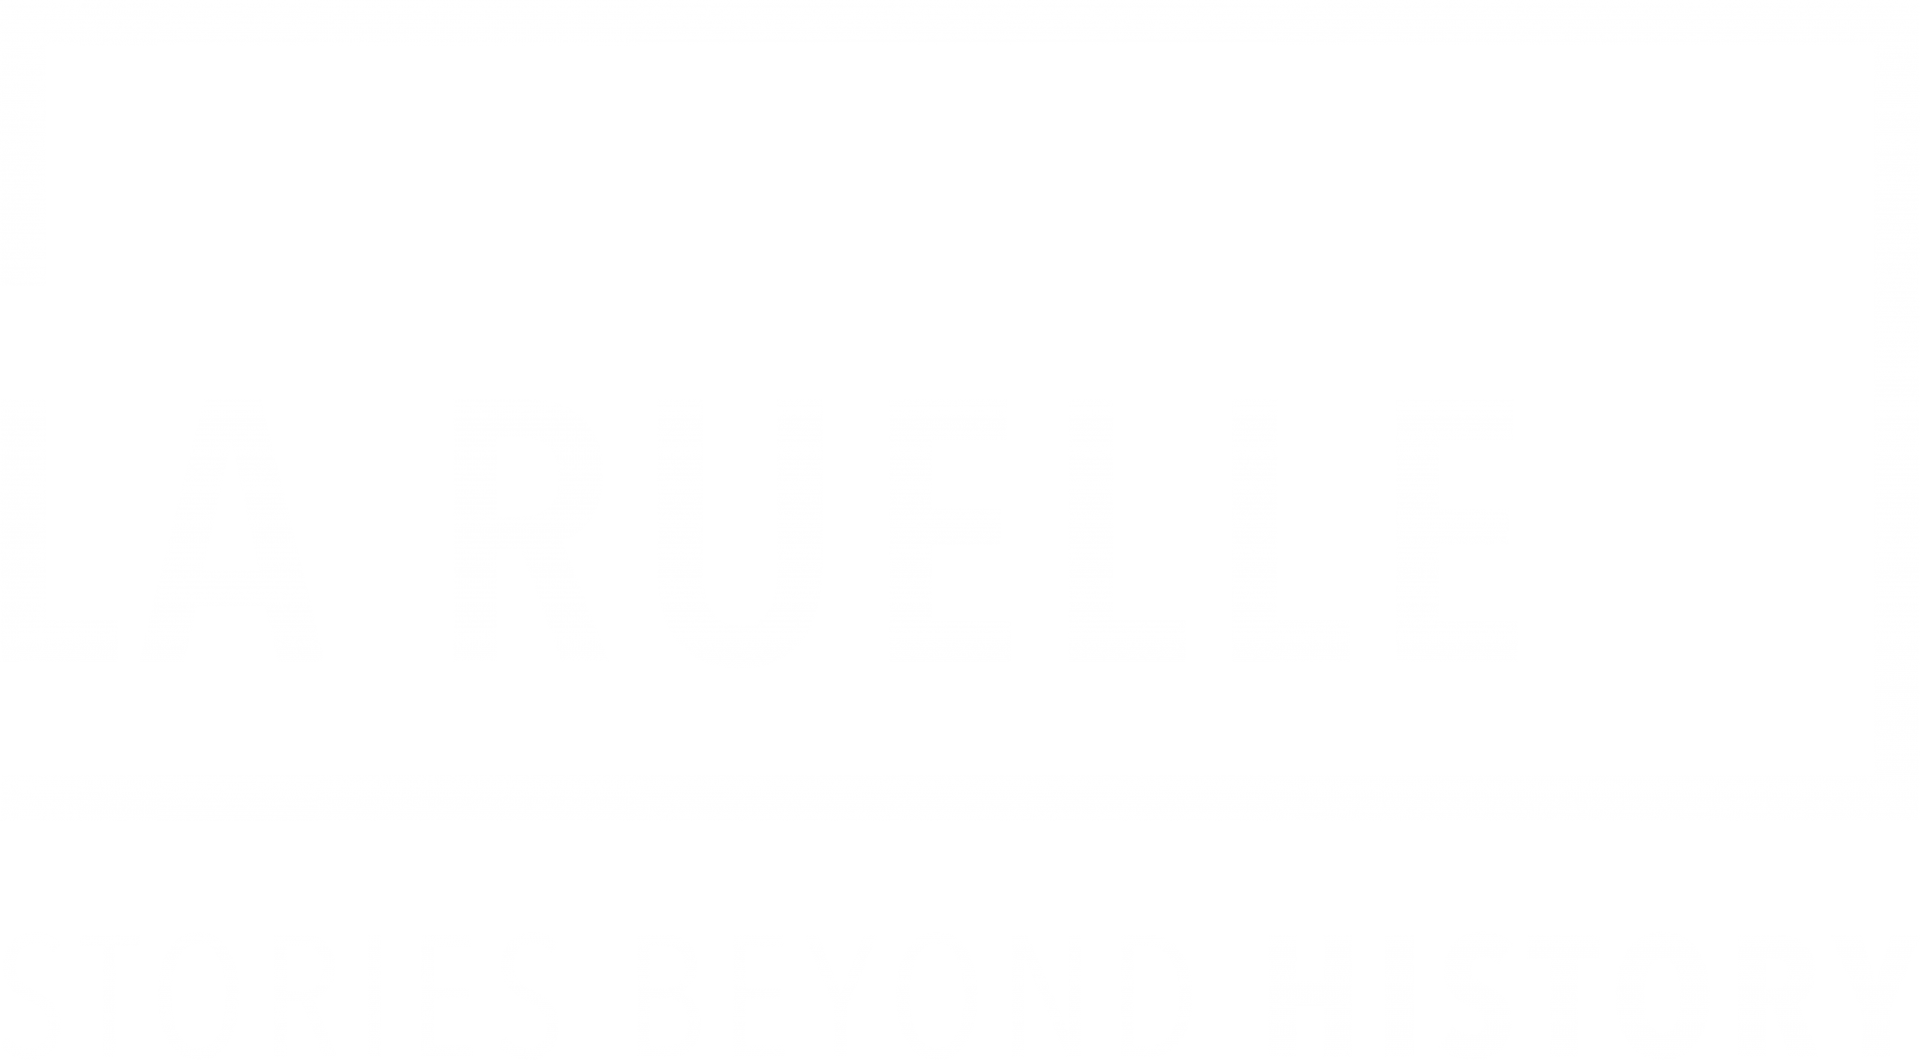 La Ruelle: Stories Beyond History